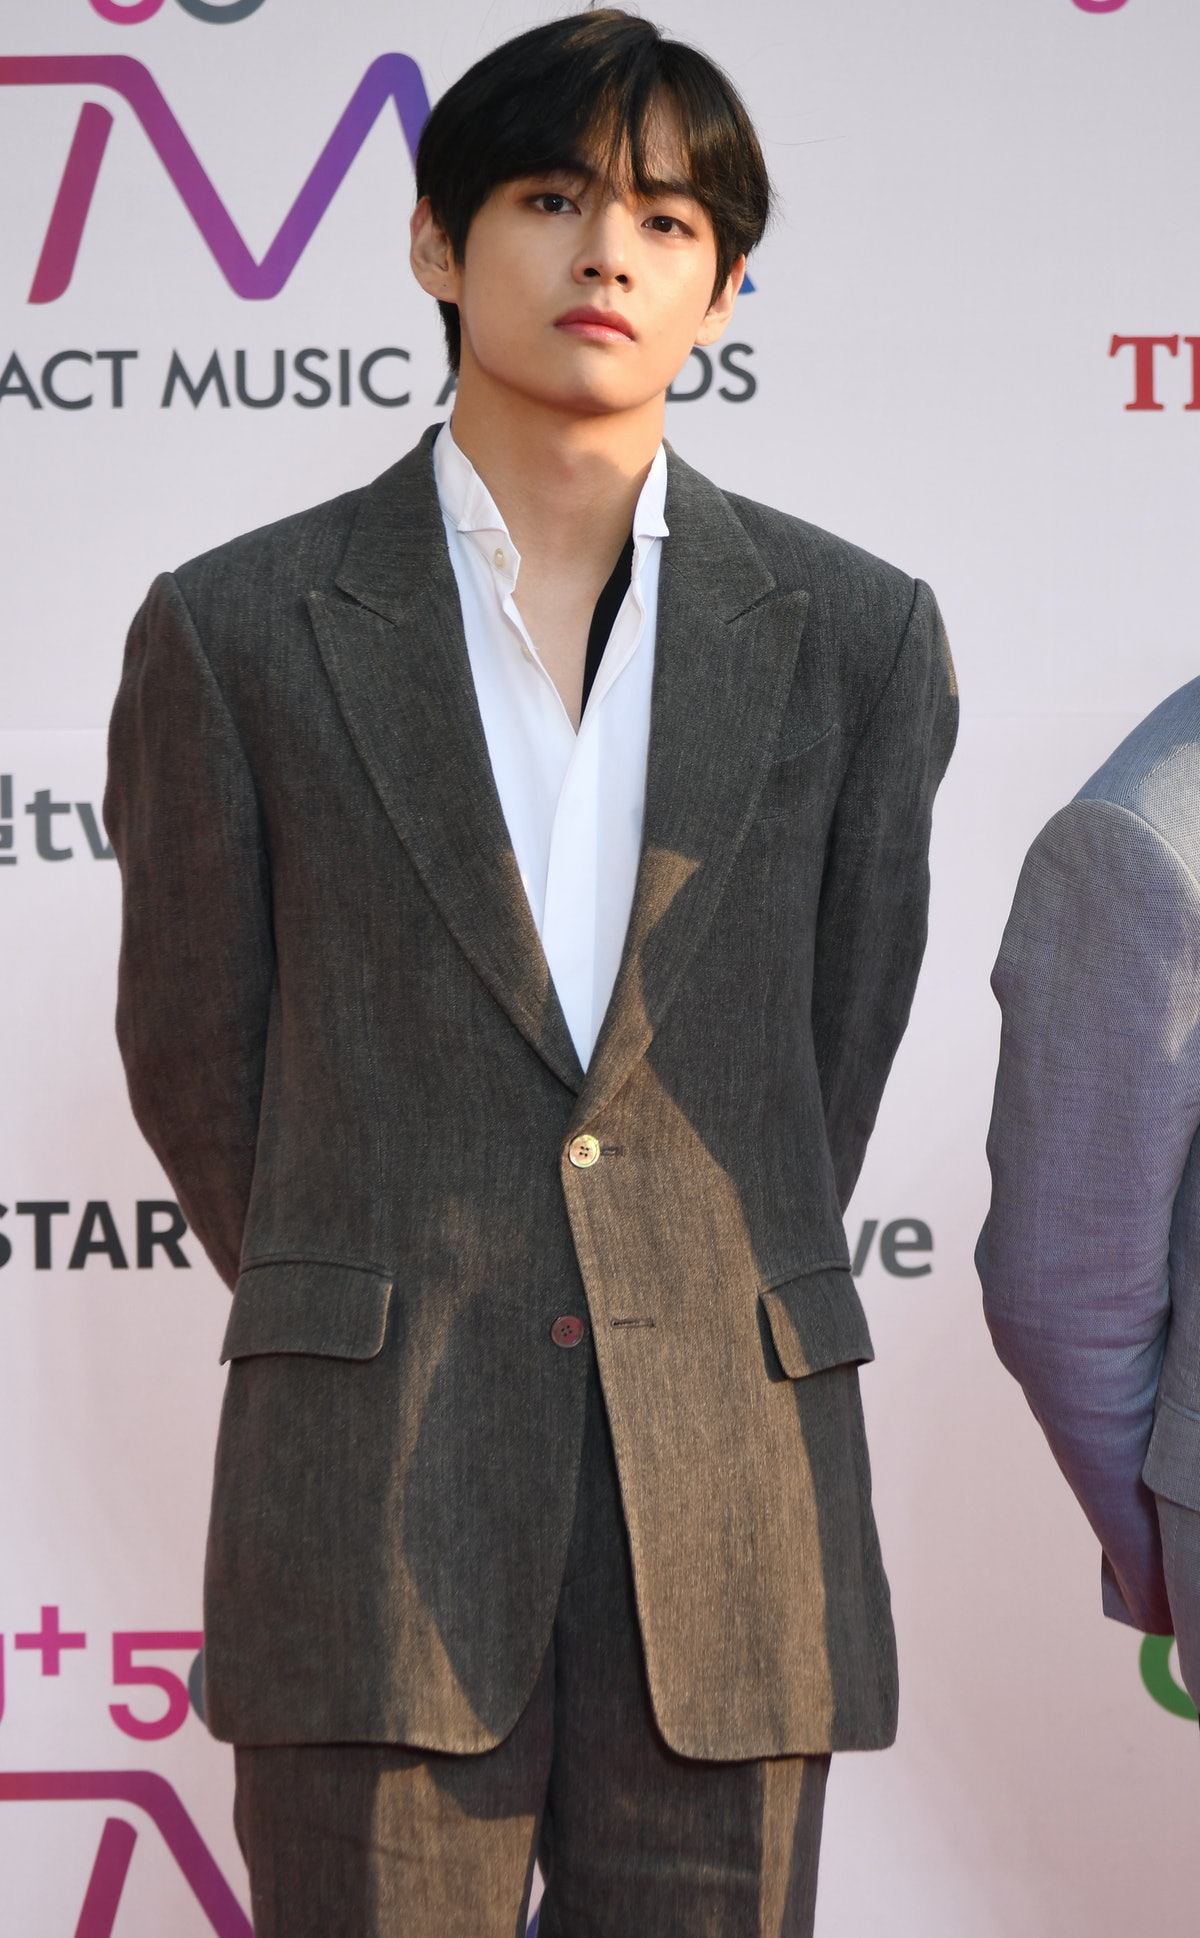 INCHEON, SOUTH KOREA – APRIL 24 : Kim Tae-Hyung member of BTS attends 'The Fact Music Awards' held a...